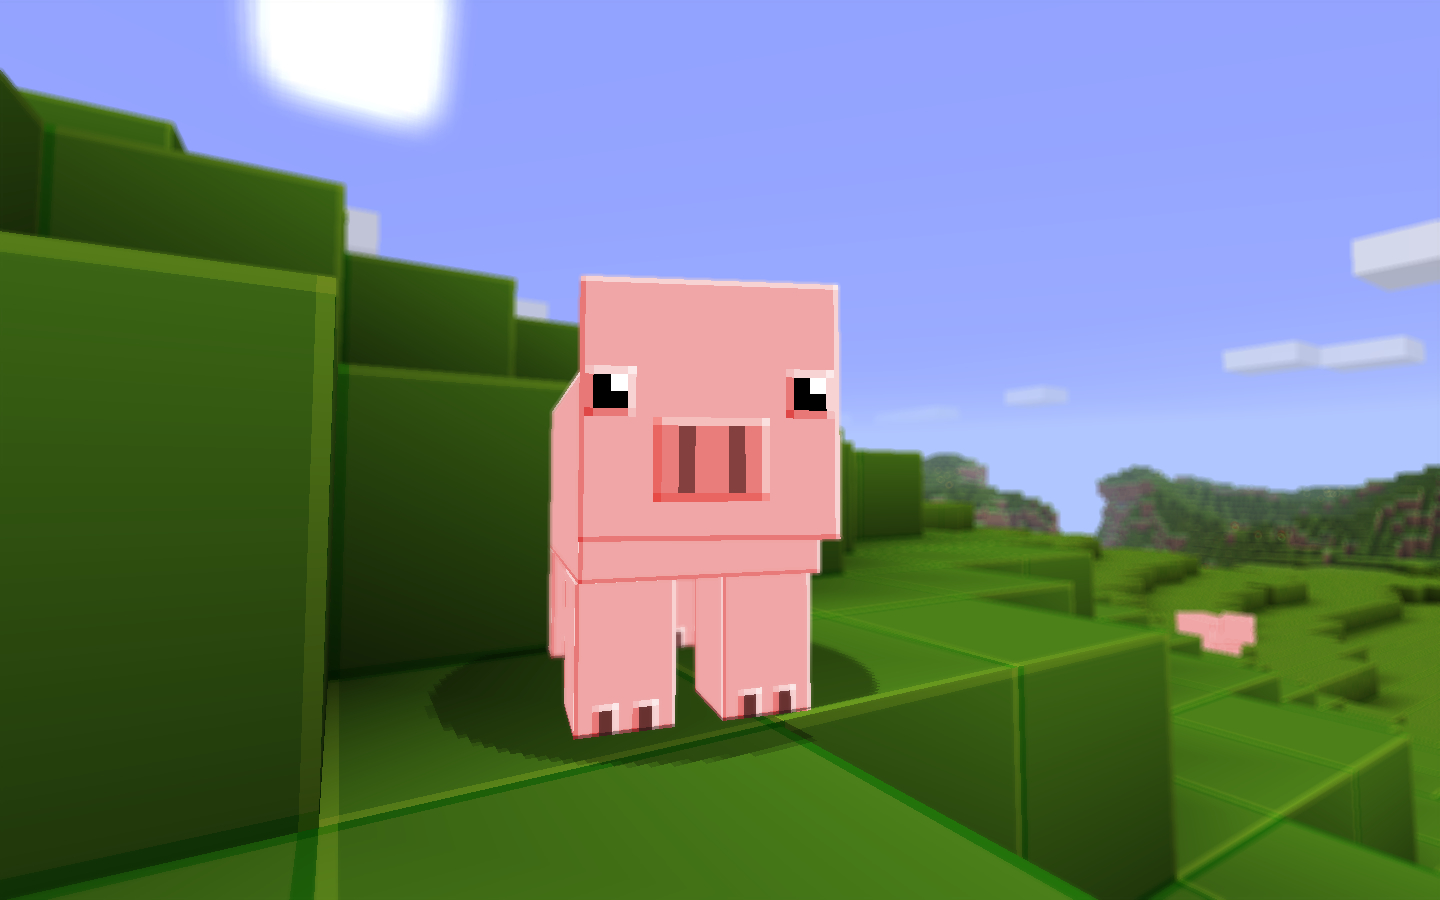 Textures minecraft pigs pig HD Wallpaper